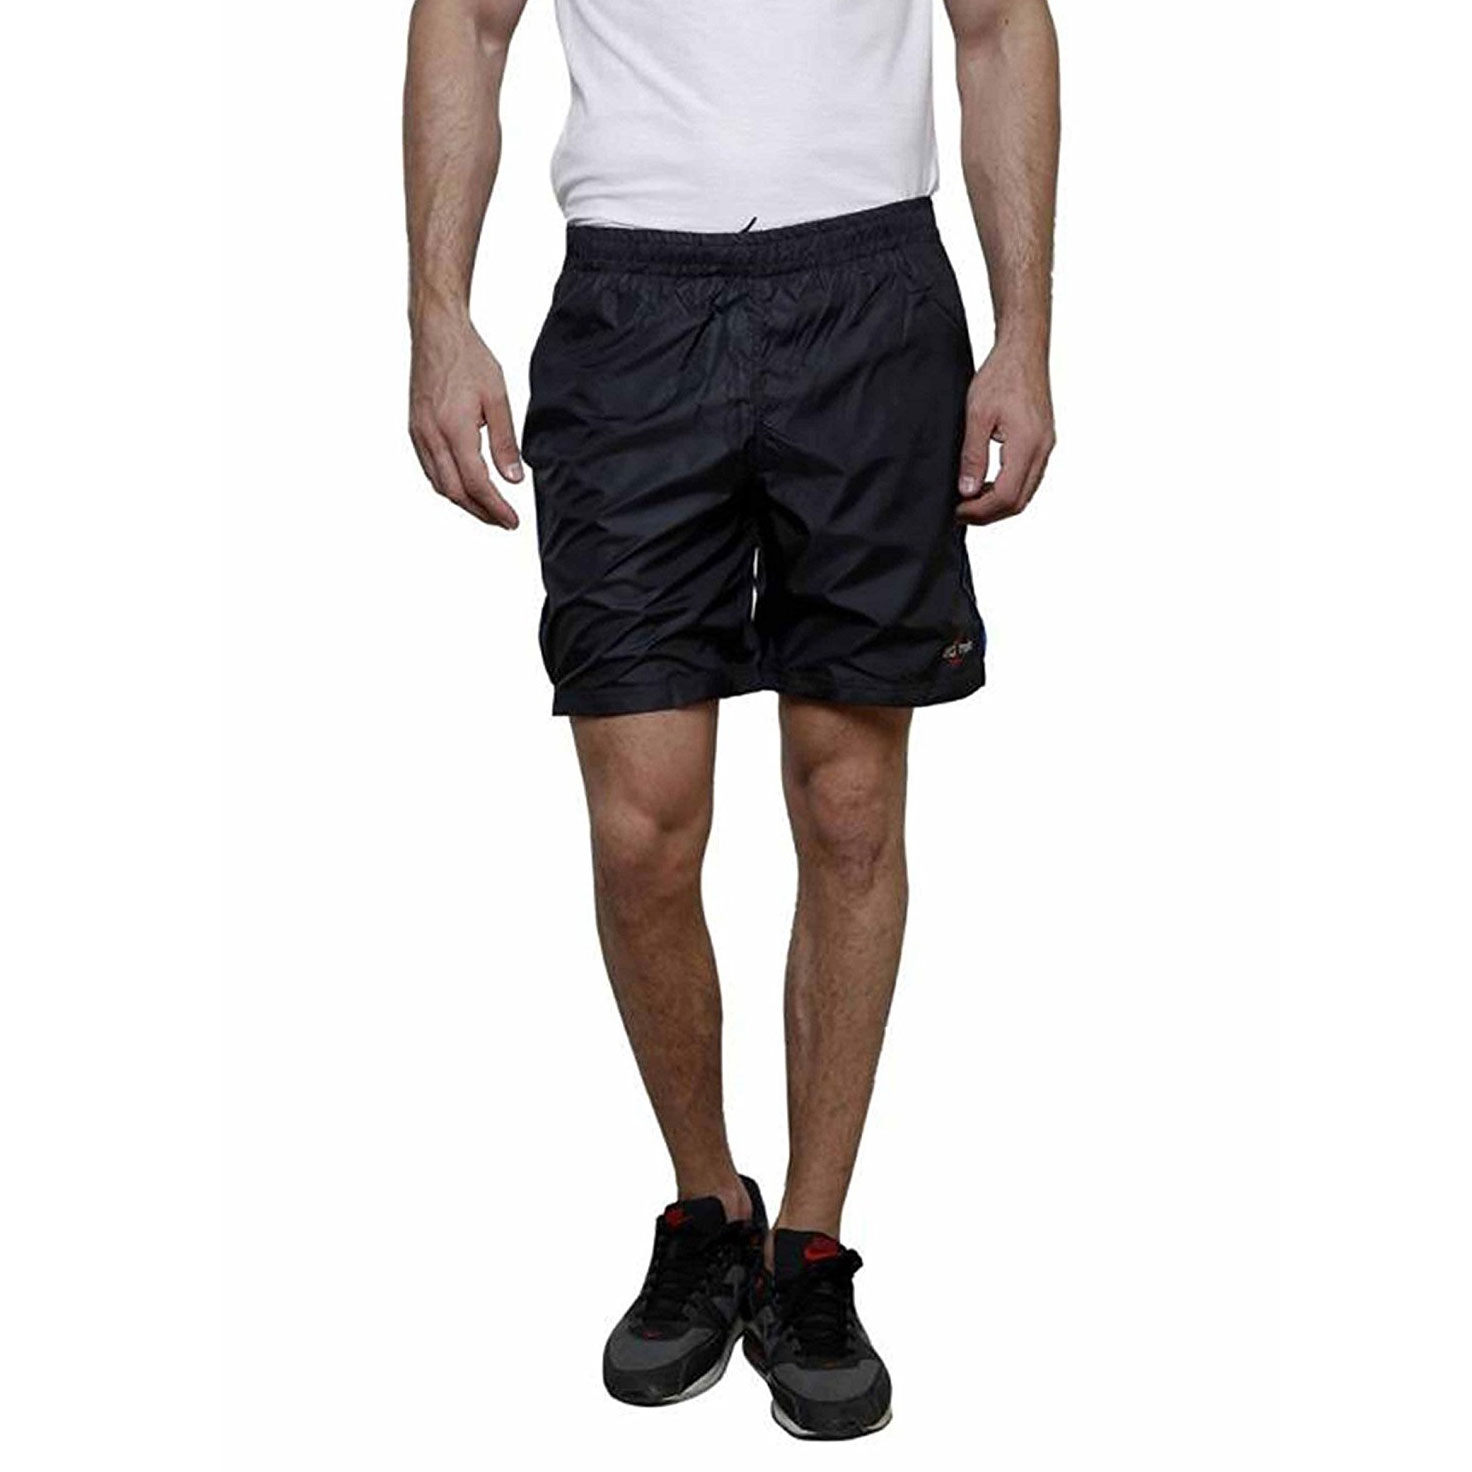 RM Men's Black Running & Sport Shorts